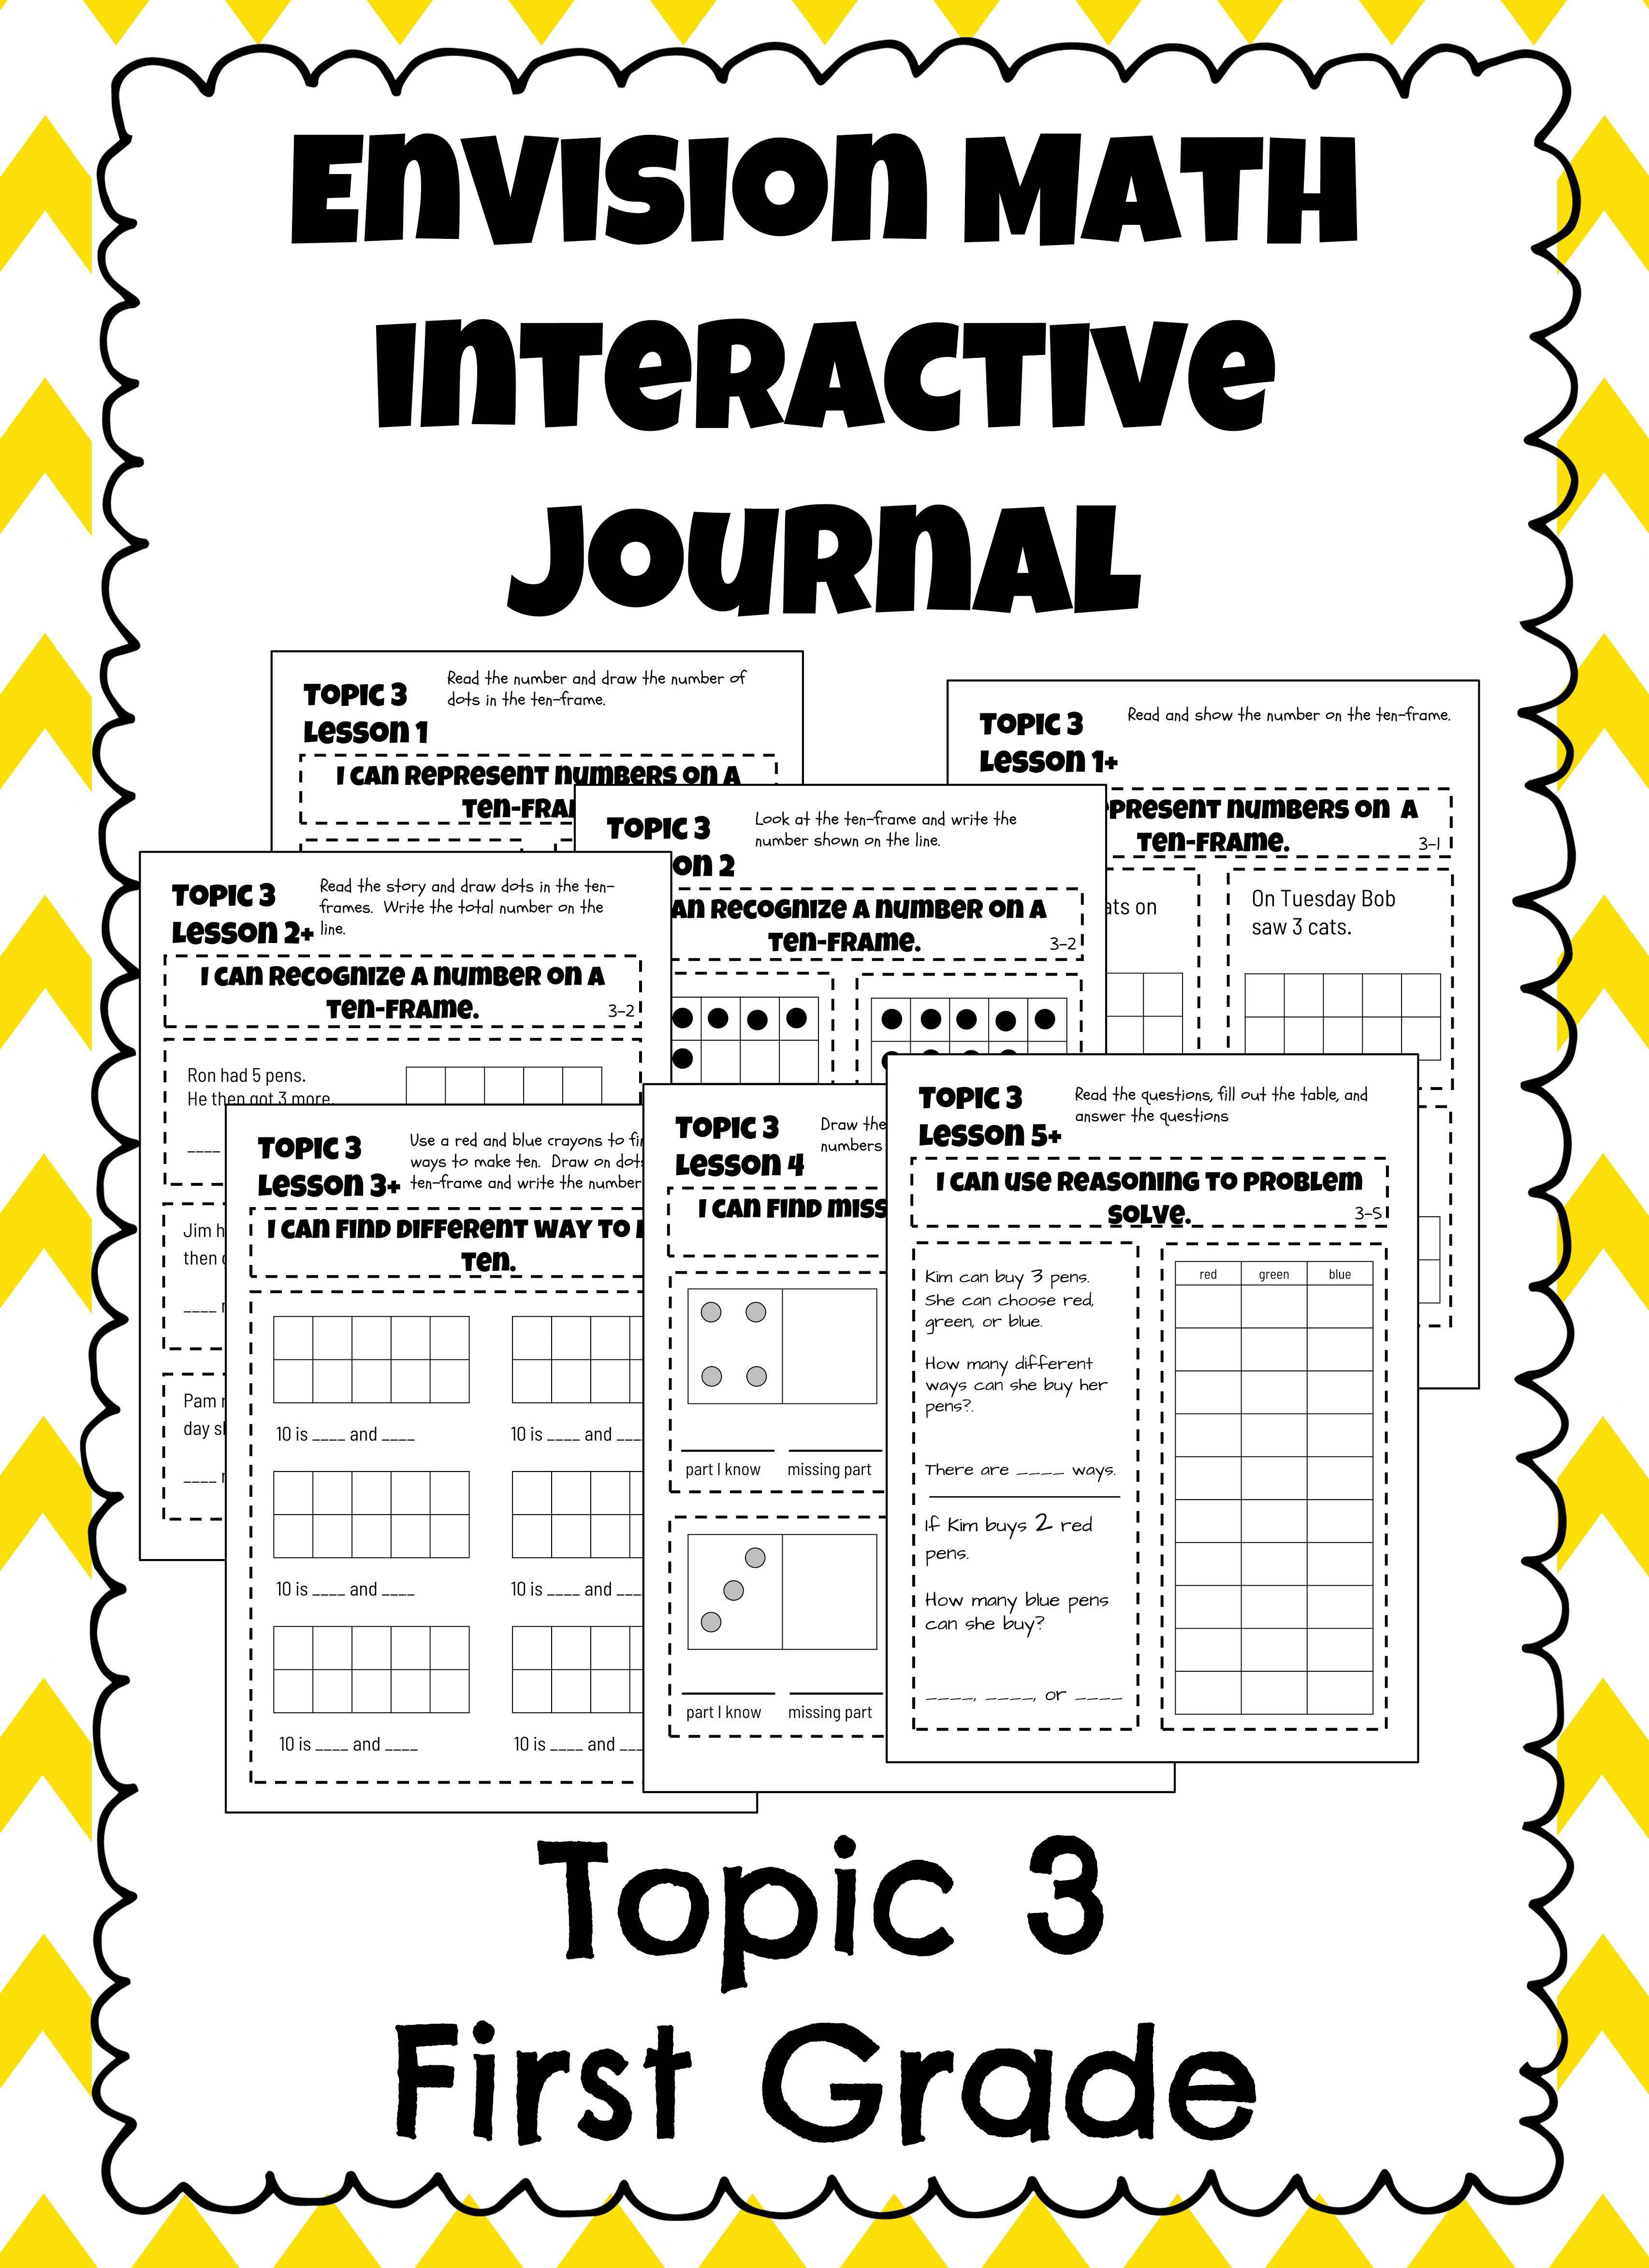 Addition Facts To 20 Envision Math Topic 3 Interactive Journal Notebook Envision Math Interactive Journals Interactive Math Journals [ 4690 x 3411 Pixel ]